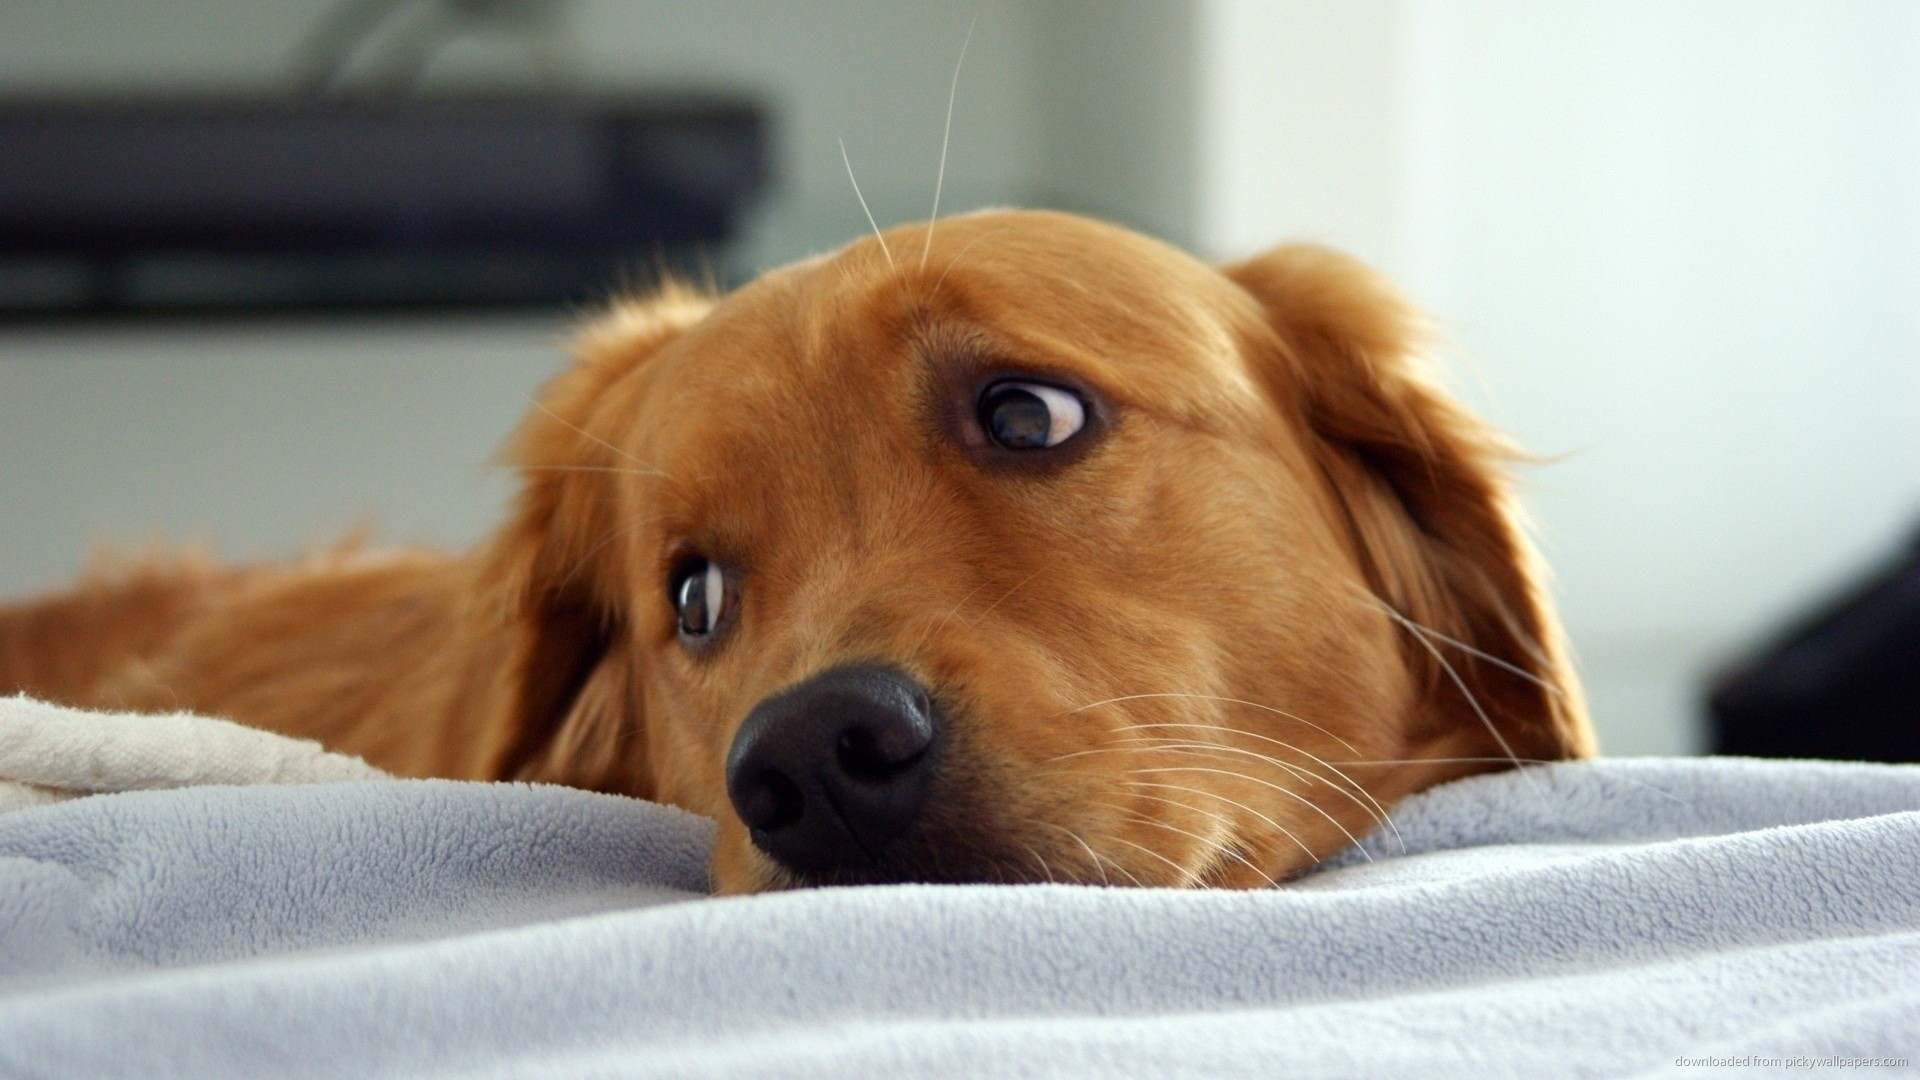 For what was the Golden Retriever bred?